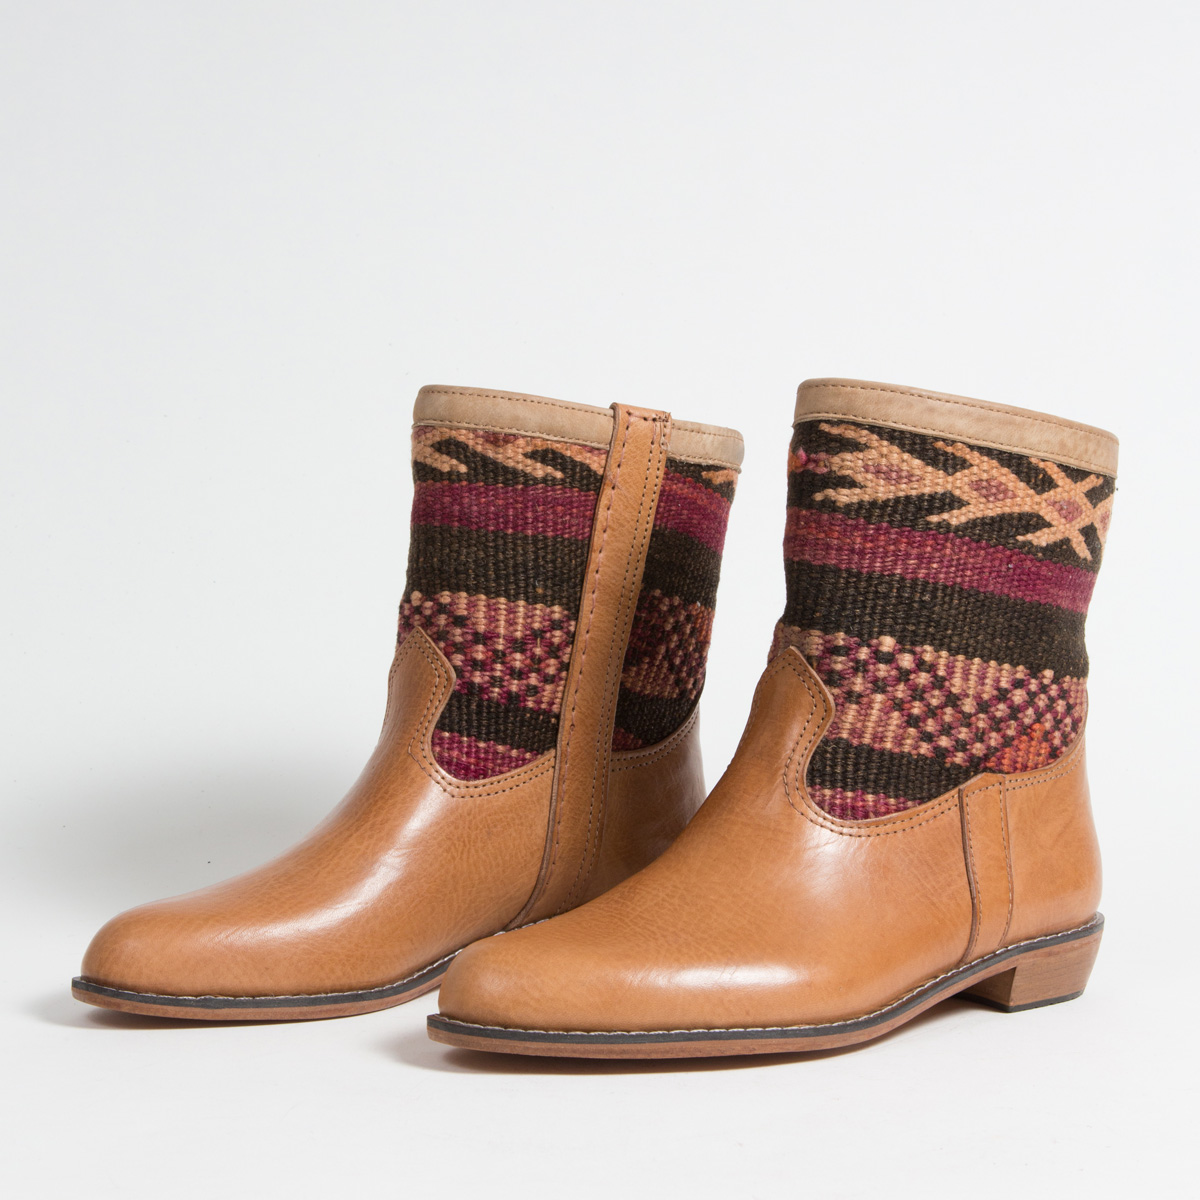 Bottines Kilim cuir mababouche artisanales (Réf. GC6-42)